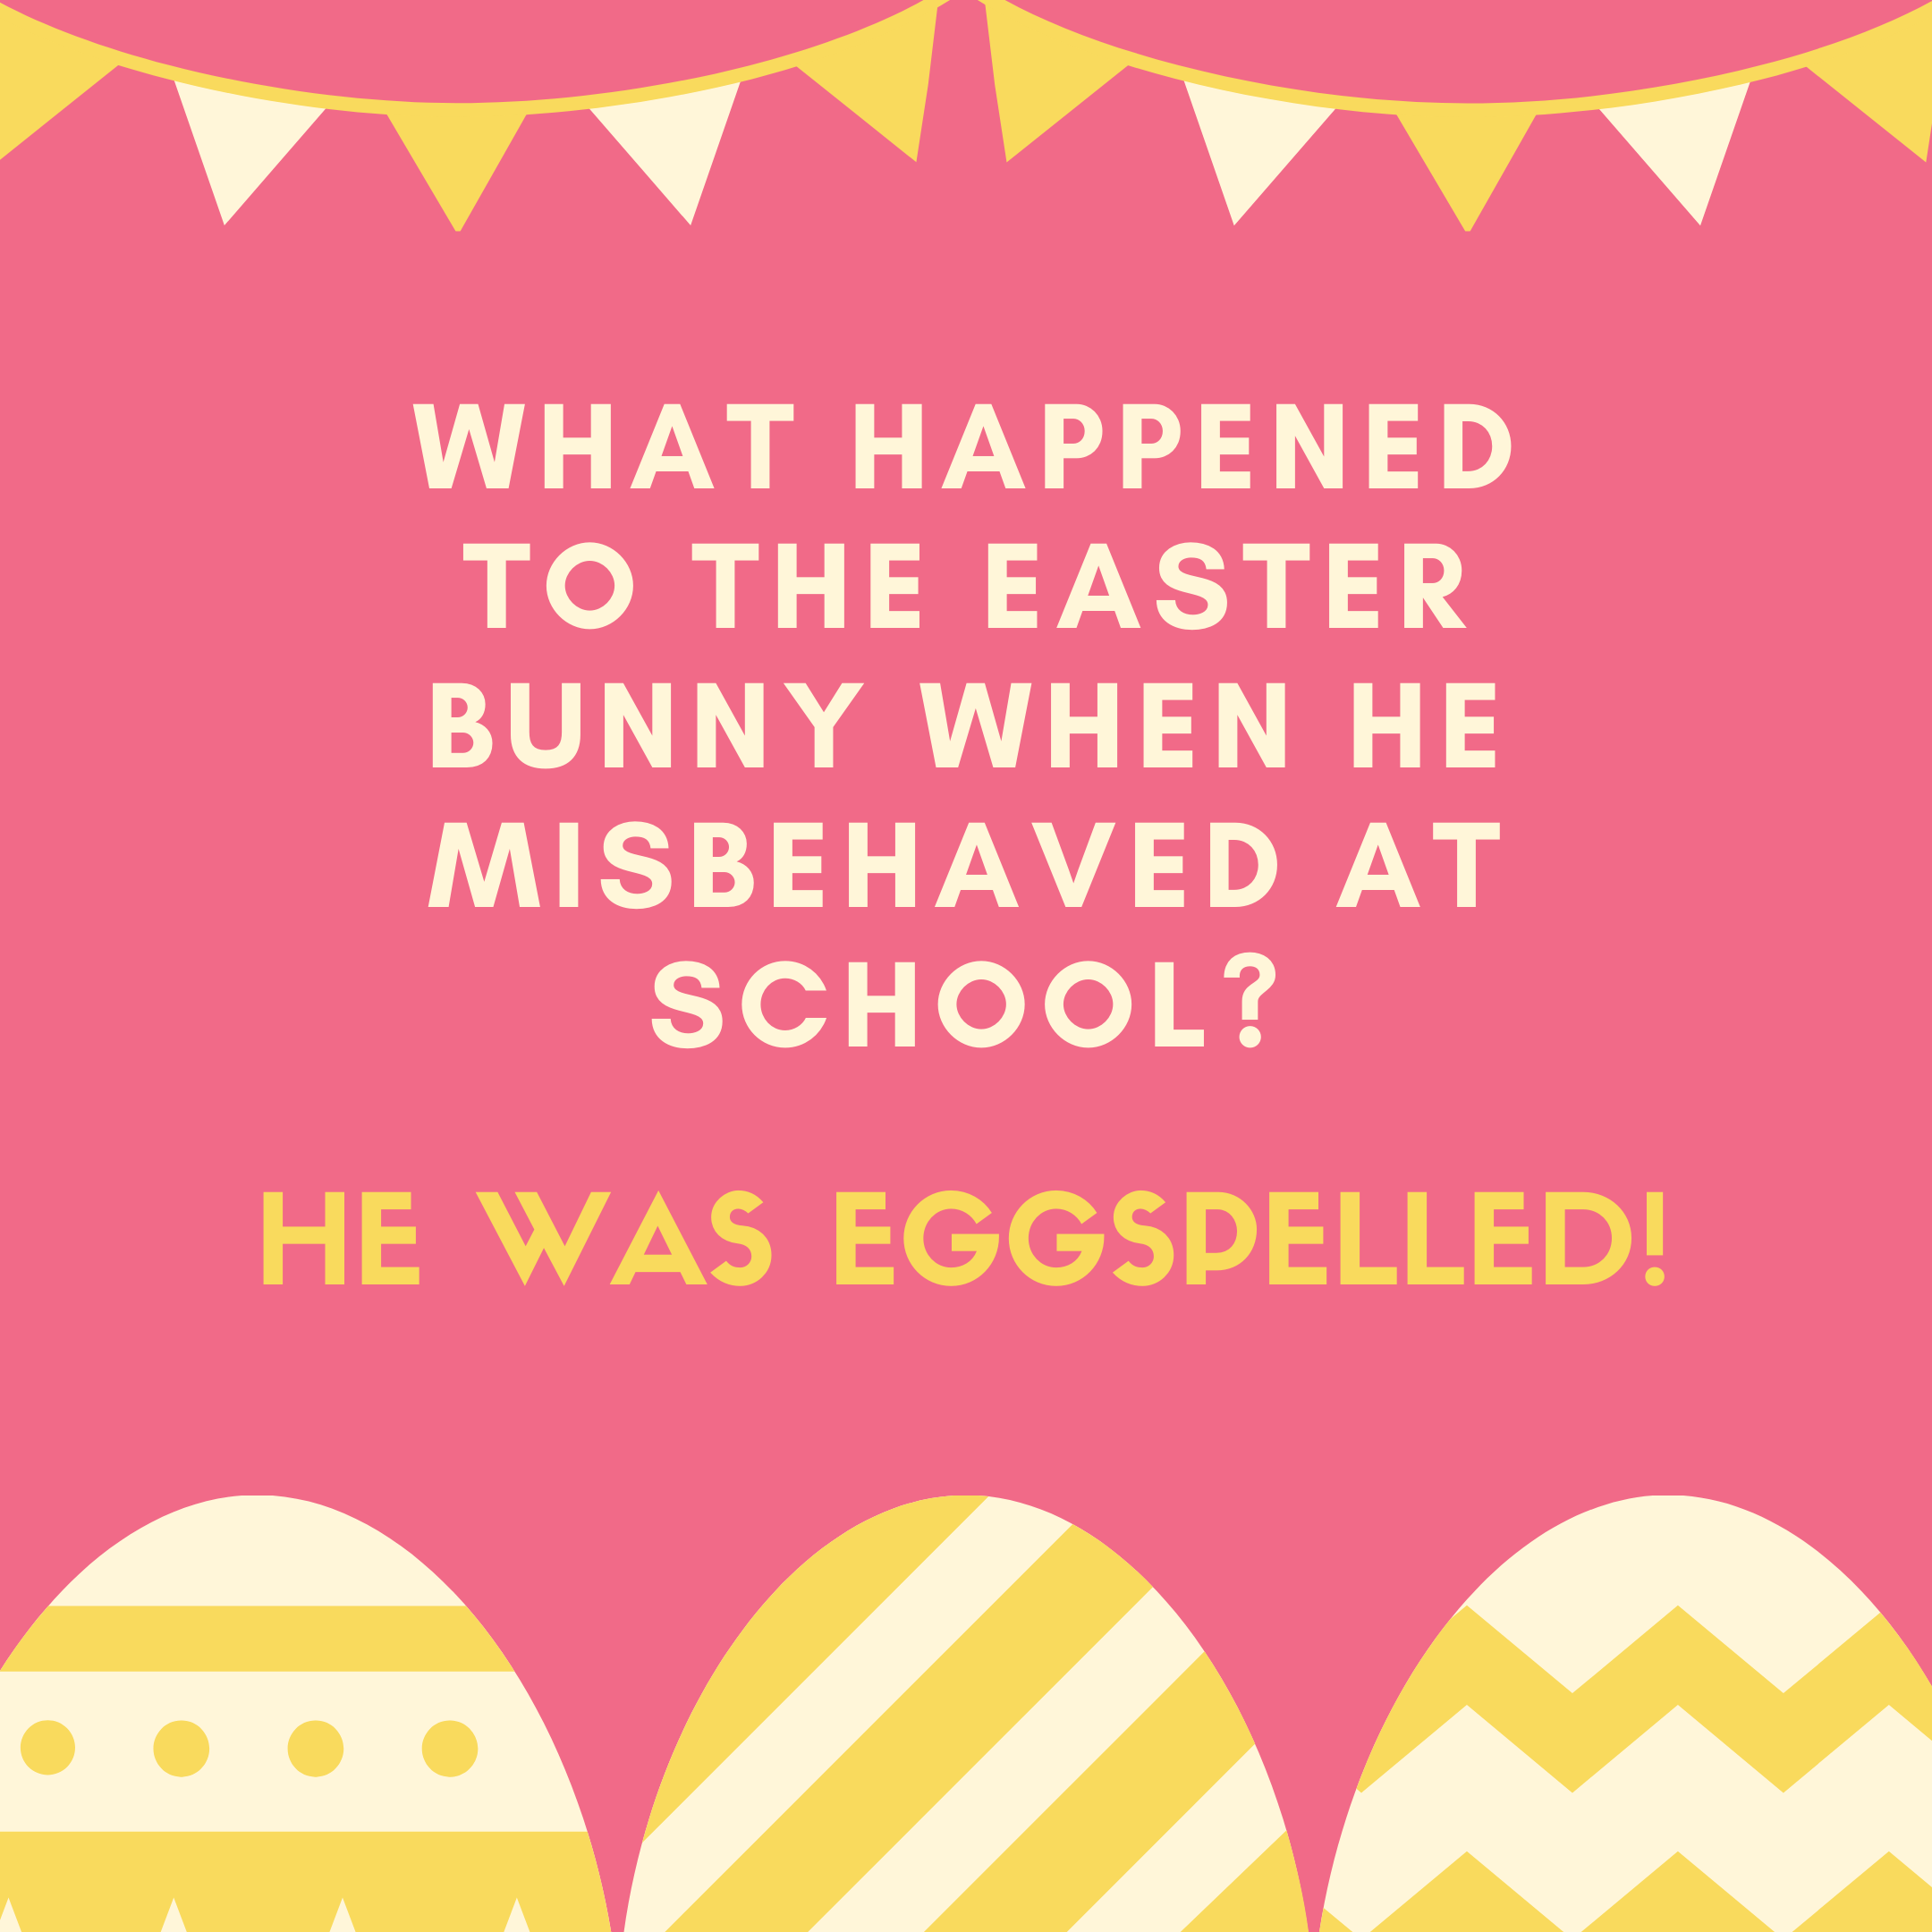 What happened to the Easter Bunny when he misbehaved at school? He was eggspelled!